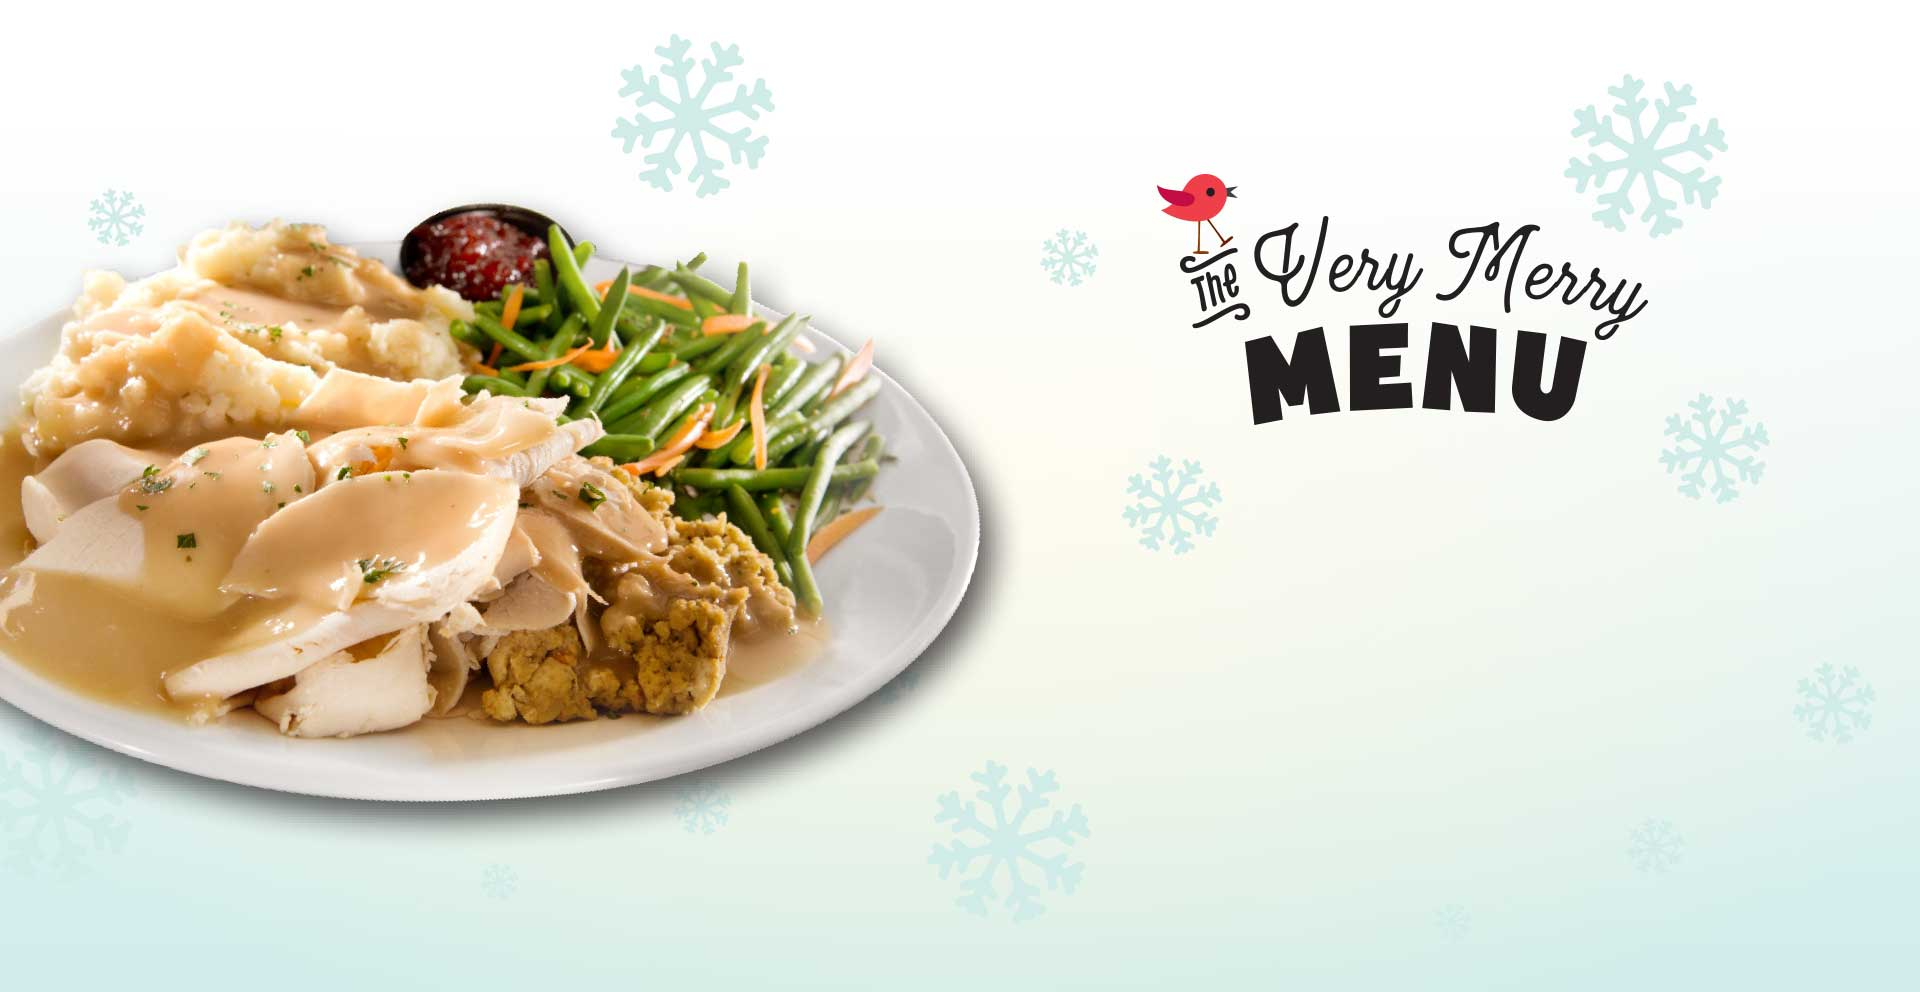 Choose from a homestyle slow roasted turkey dinner to turkey pot pie and much more. See participating locations for menu items and pricing.